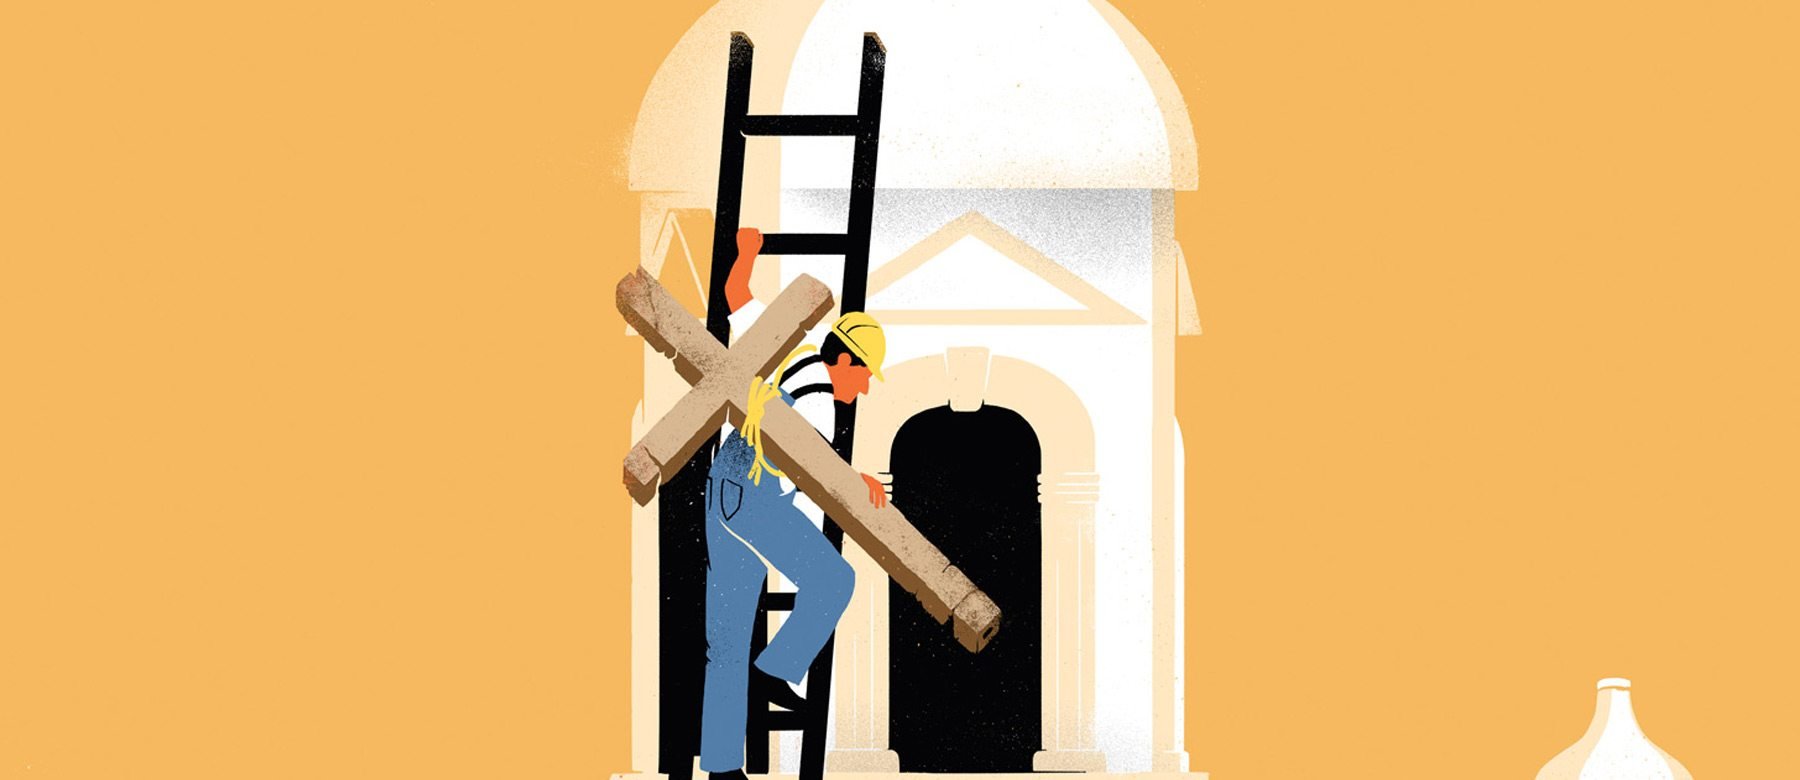 Altared: Renovating the House of God